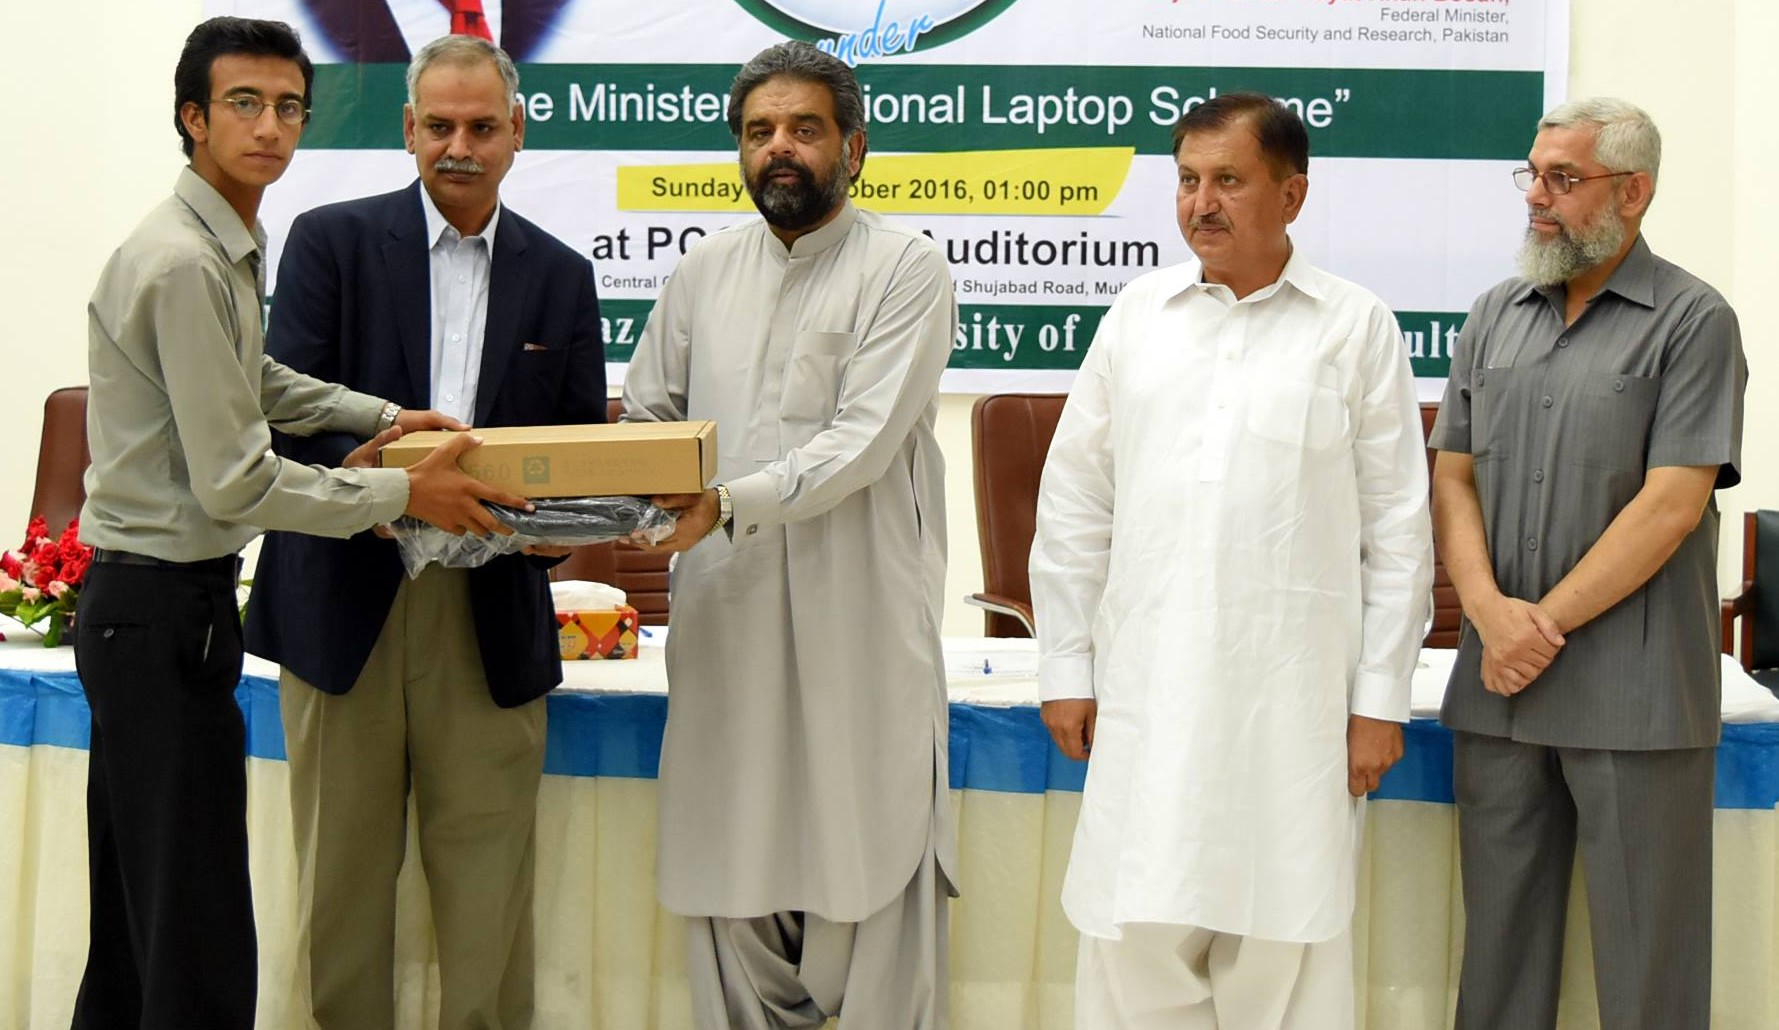 MNS-UAM Laptop Distribution Ceremony 9th October, 2016